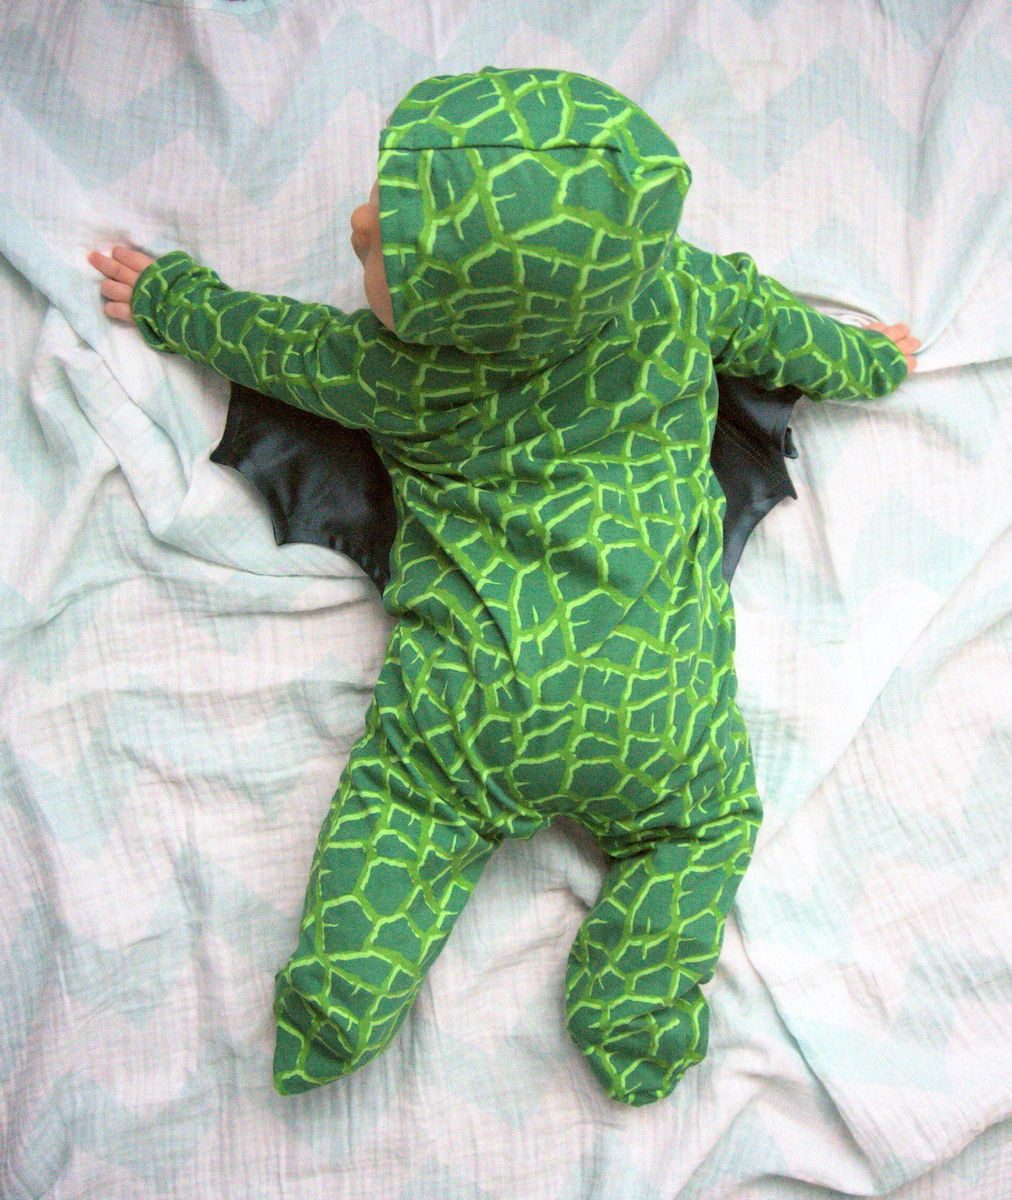 Baby in green winged dragon pajamas